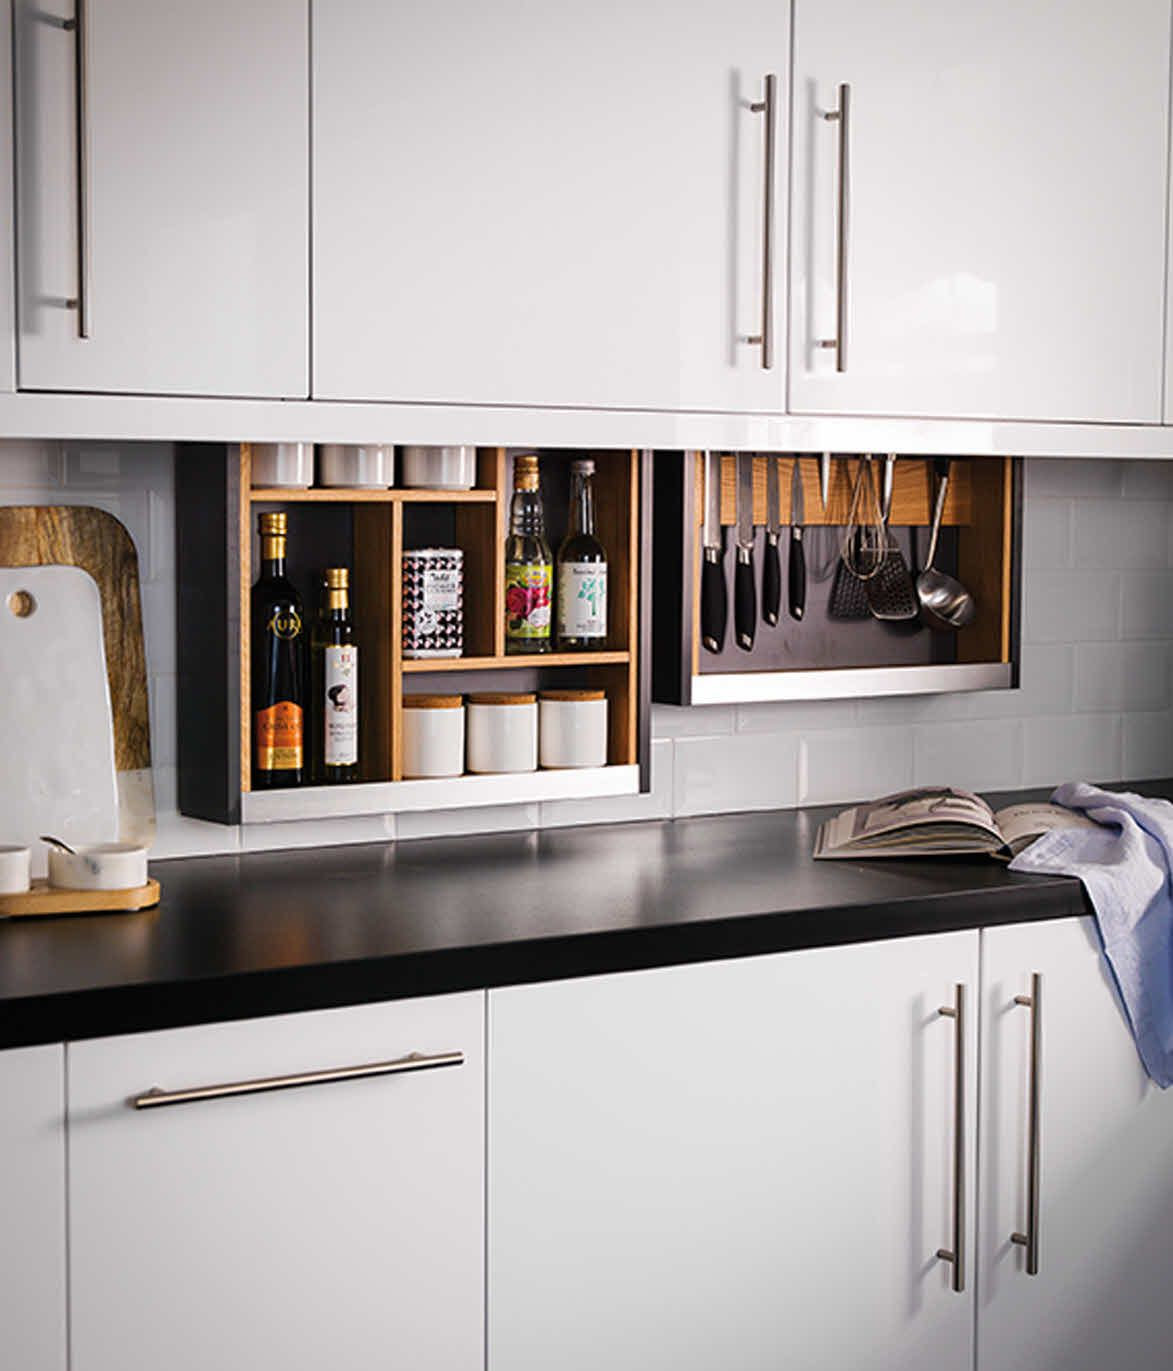 Cabinet Plus Cabinets Hidden In Cabinets Kitchen Cabinet Storage Solutions Hidden Kitchen Kitchen Technology